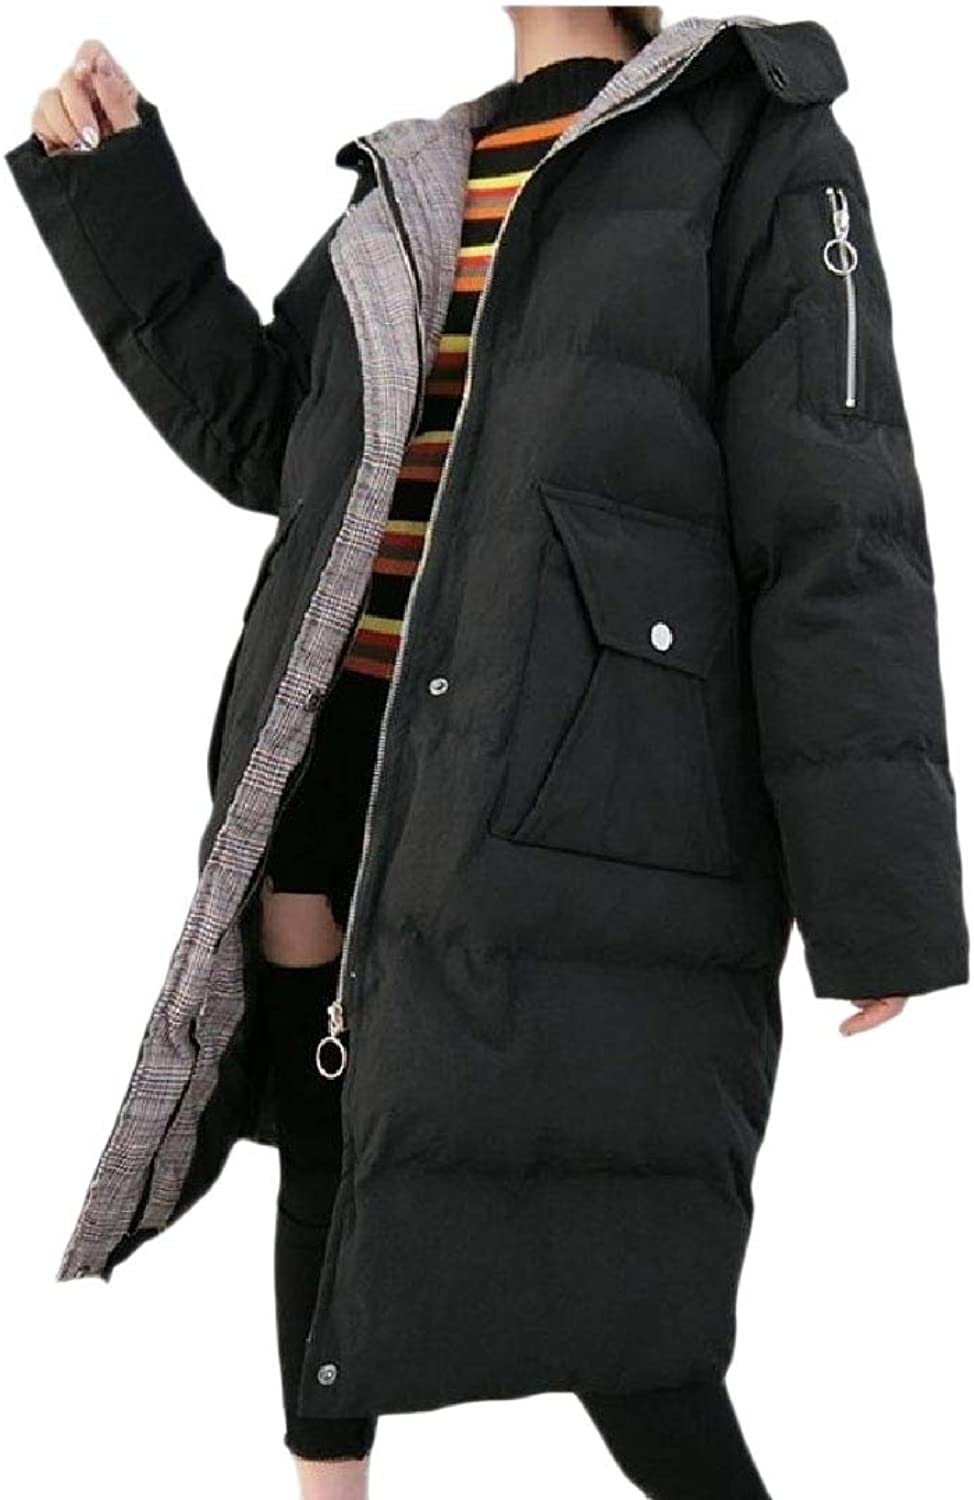 TaoNice Womens Casual Down Outwear Topcoat Puffer CottonPadded Parka